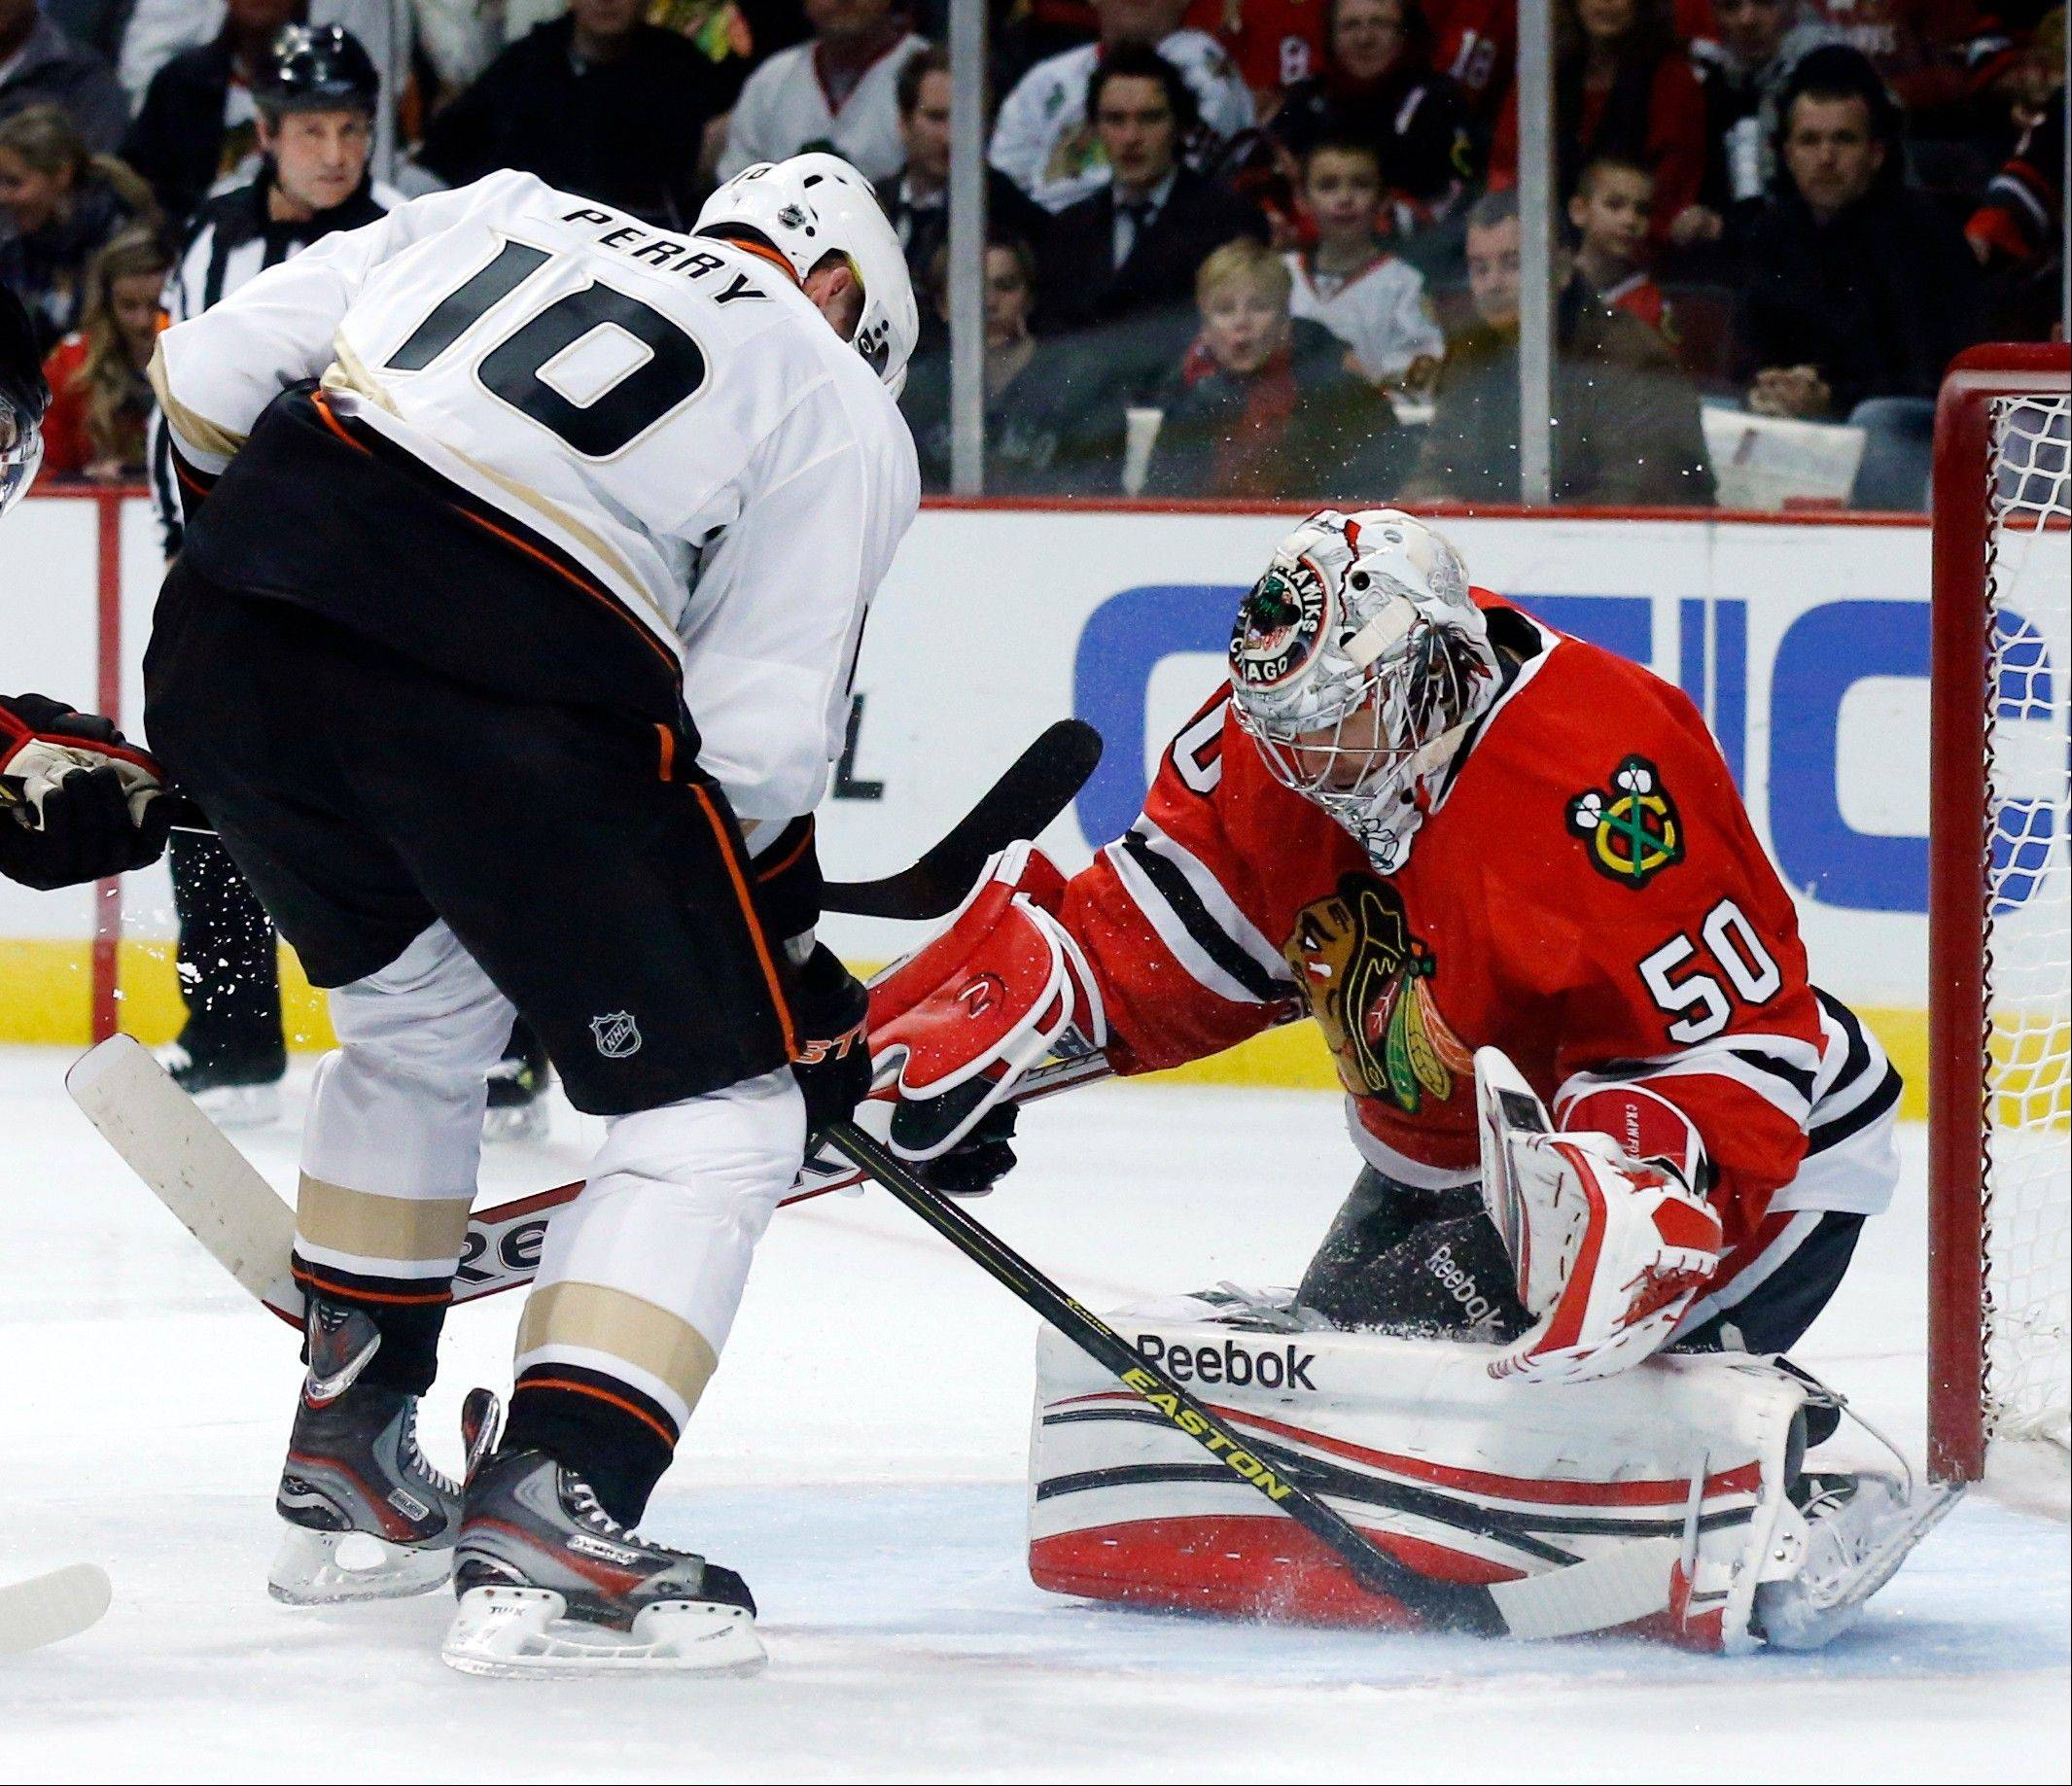 Blackhawks goalie Corey Crawford blocks the rebound shot of Anaheim Ducks right wing Corey Perry during Tuesday's first period at United Center.